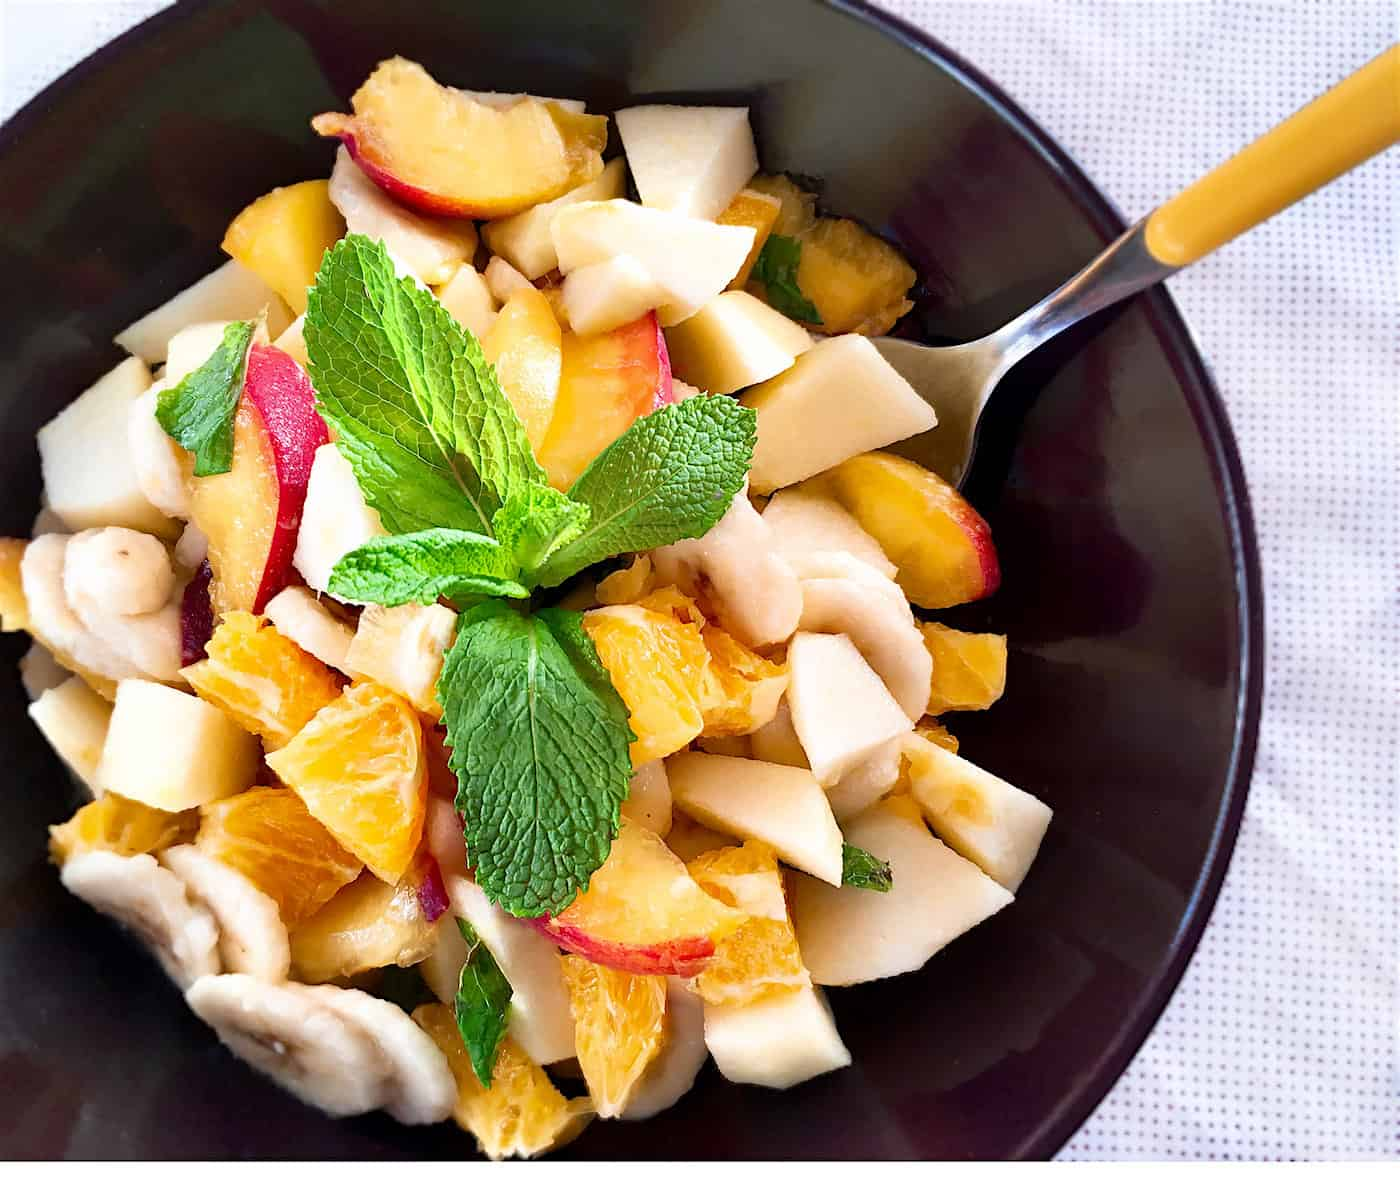 Italian Fruit Salad - Macedonia di Frutta